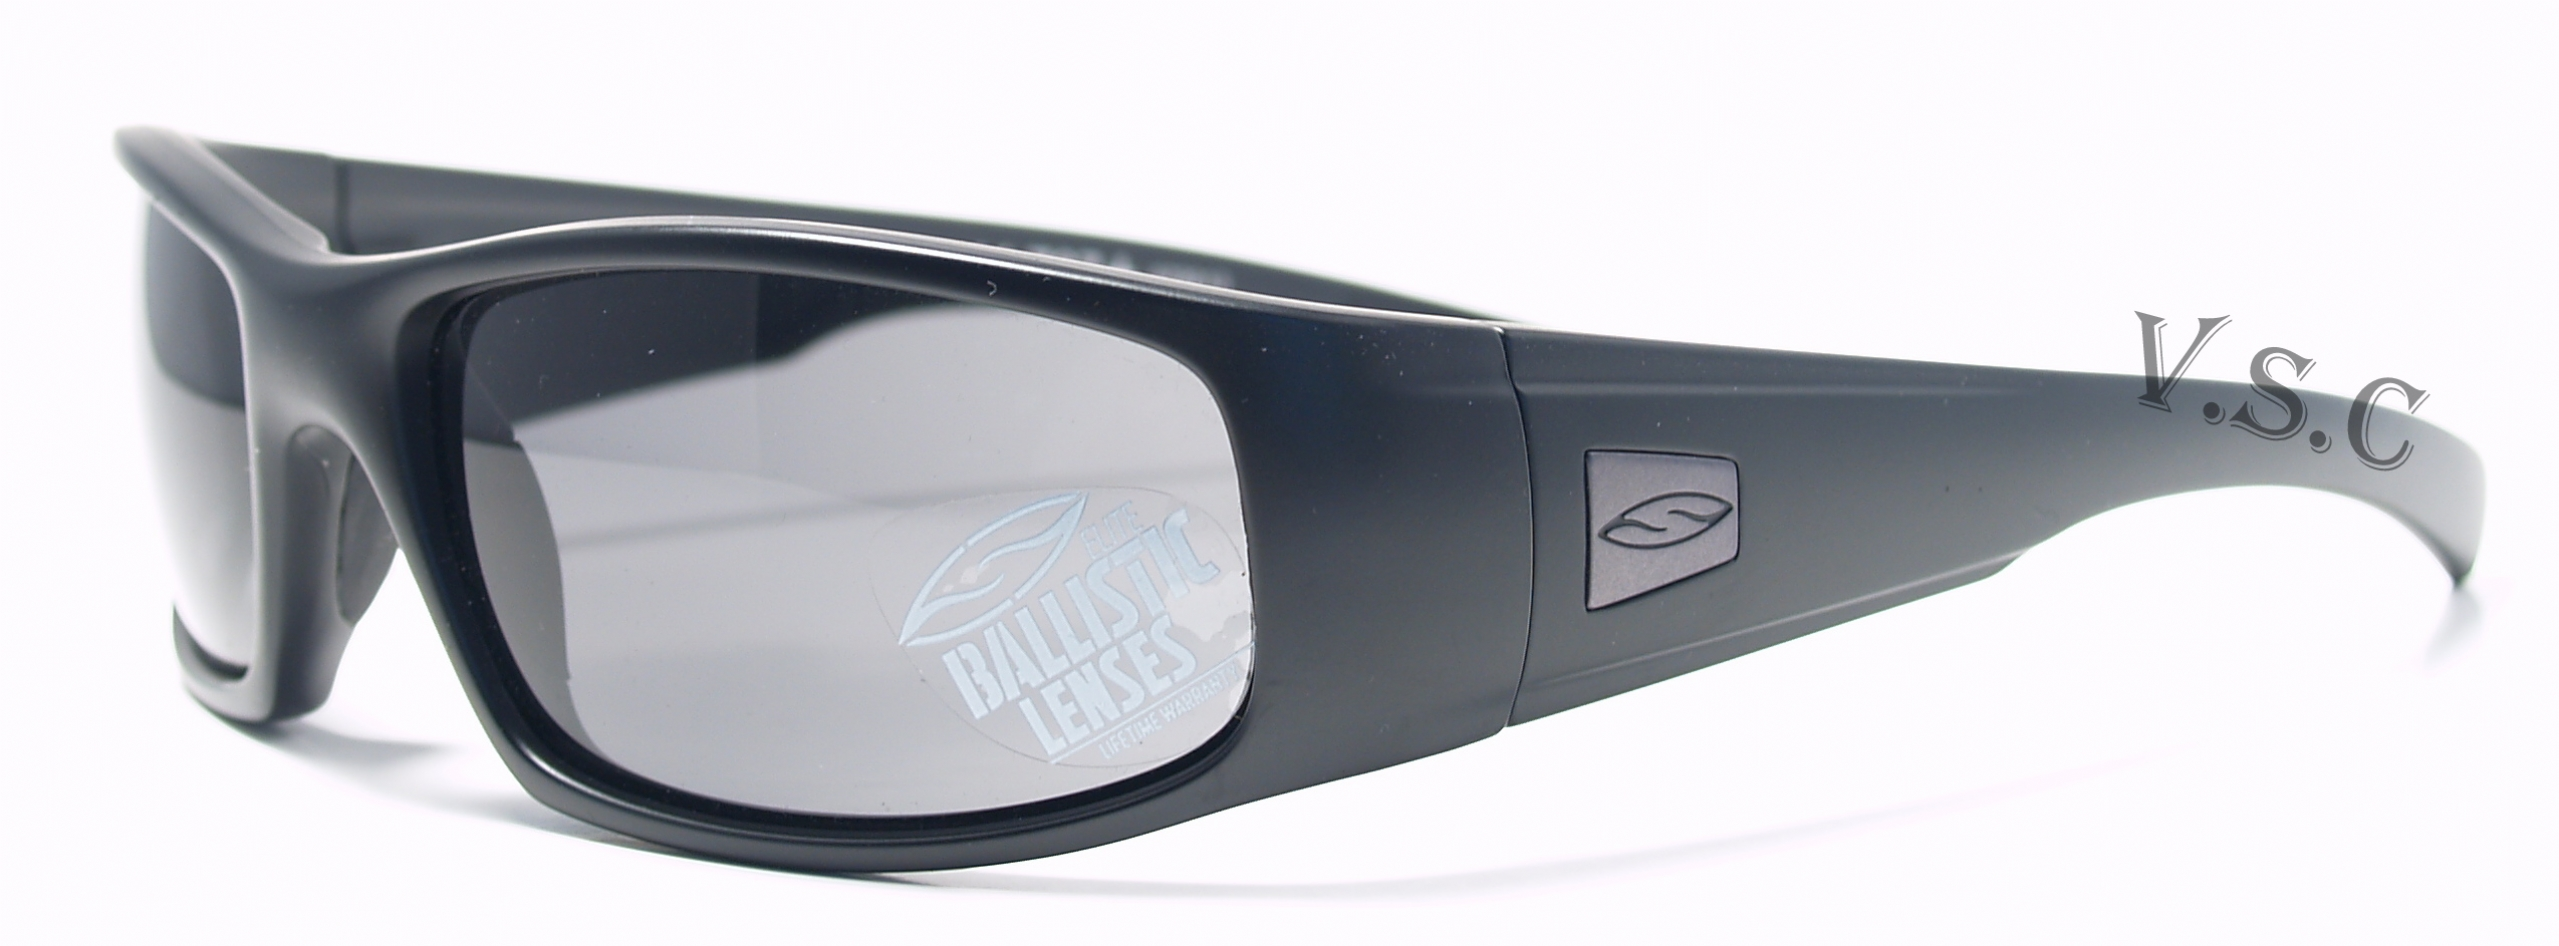 SMITH OPTICS HIDEOUT TACTICAL